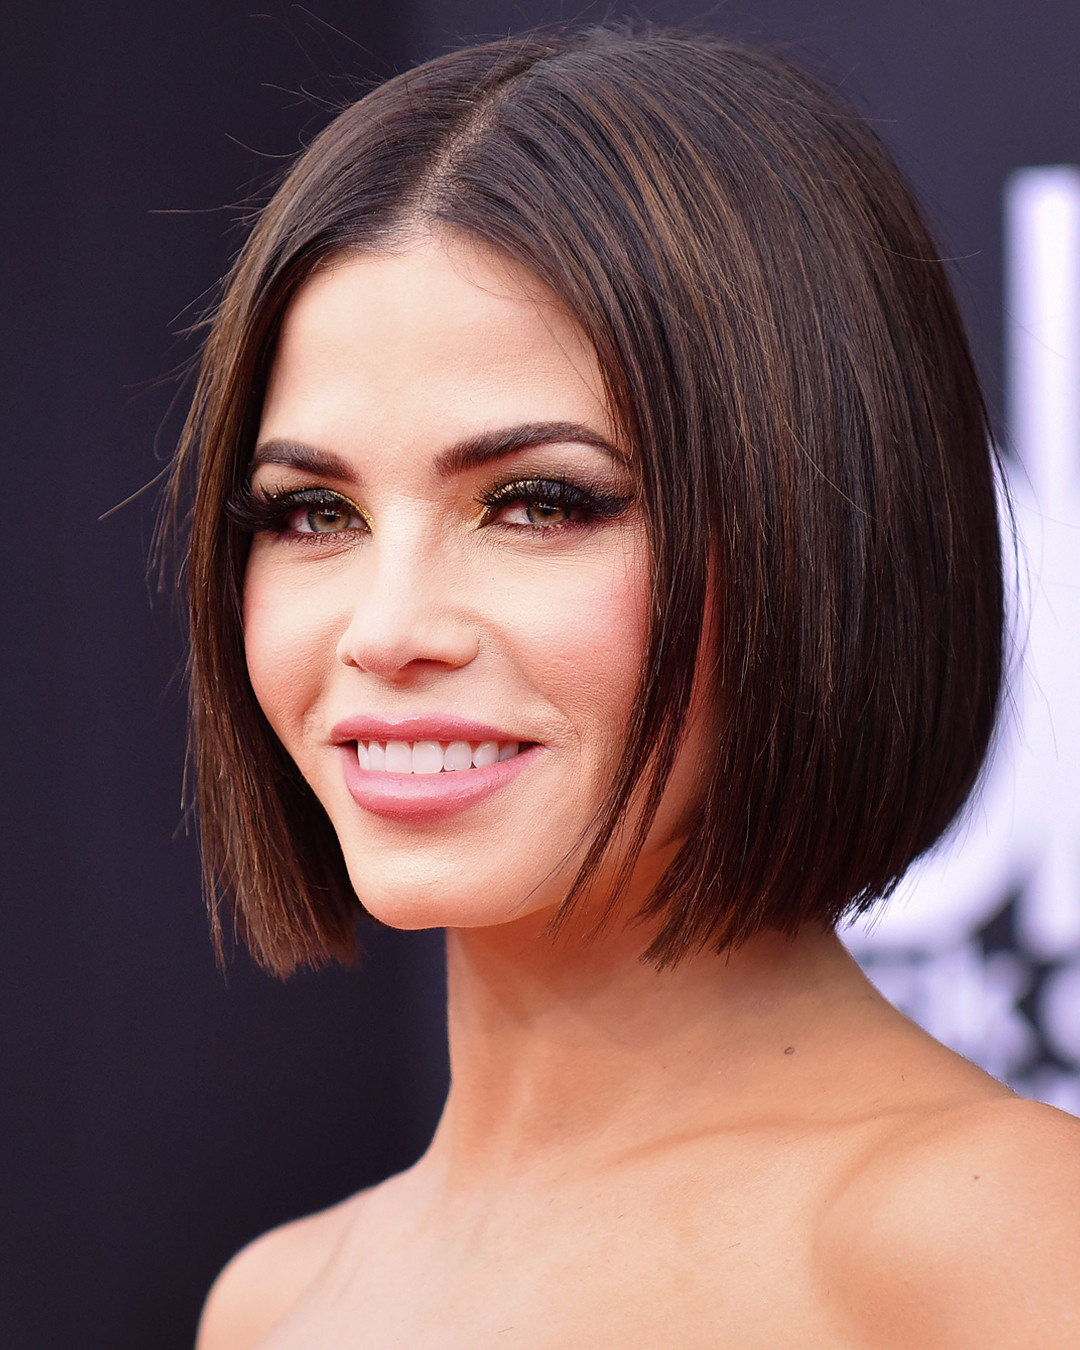 The Unexpected Drugstore Beauty Hack Jenna Dewan Uses for Her Brows